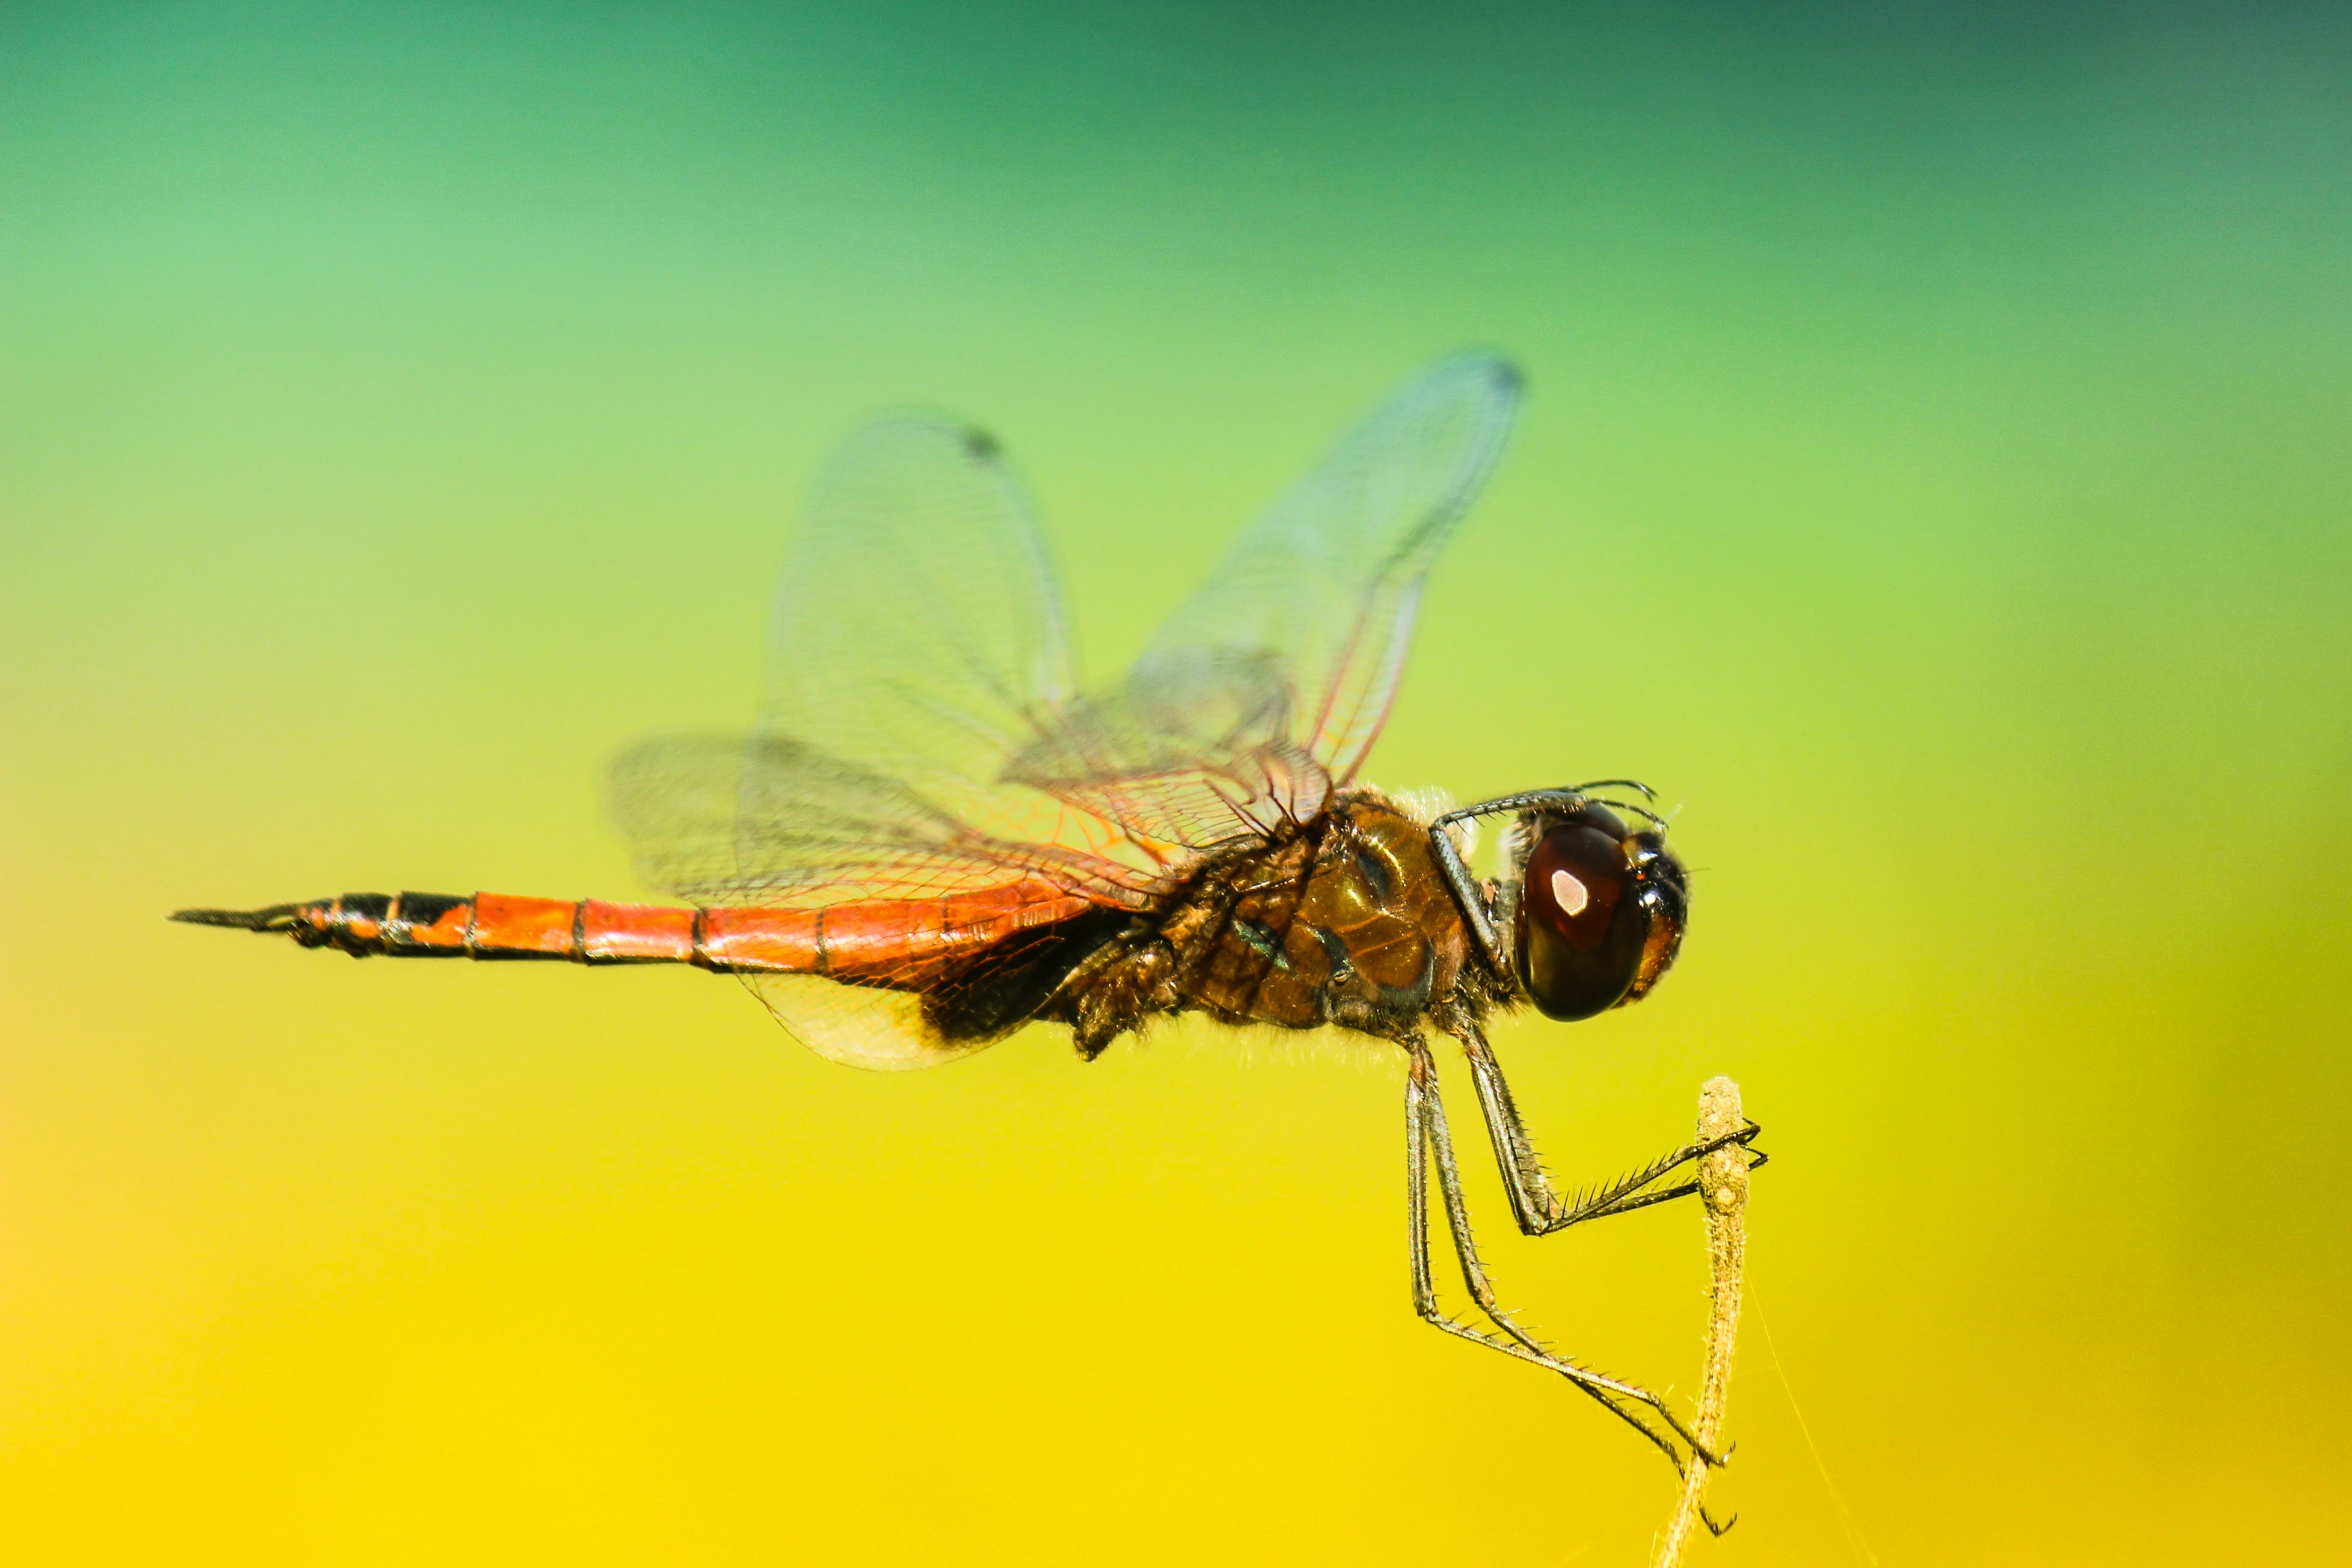 Macro of an orange dragonfly with wings spread landing and holding onto a stem